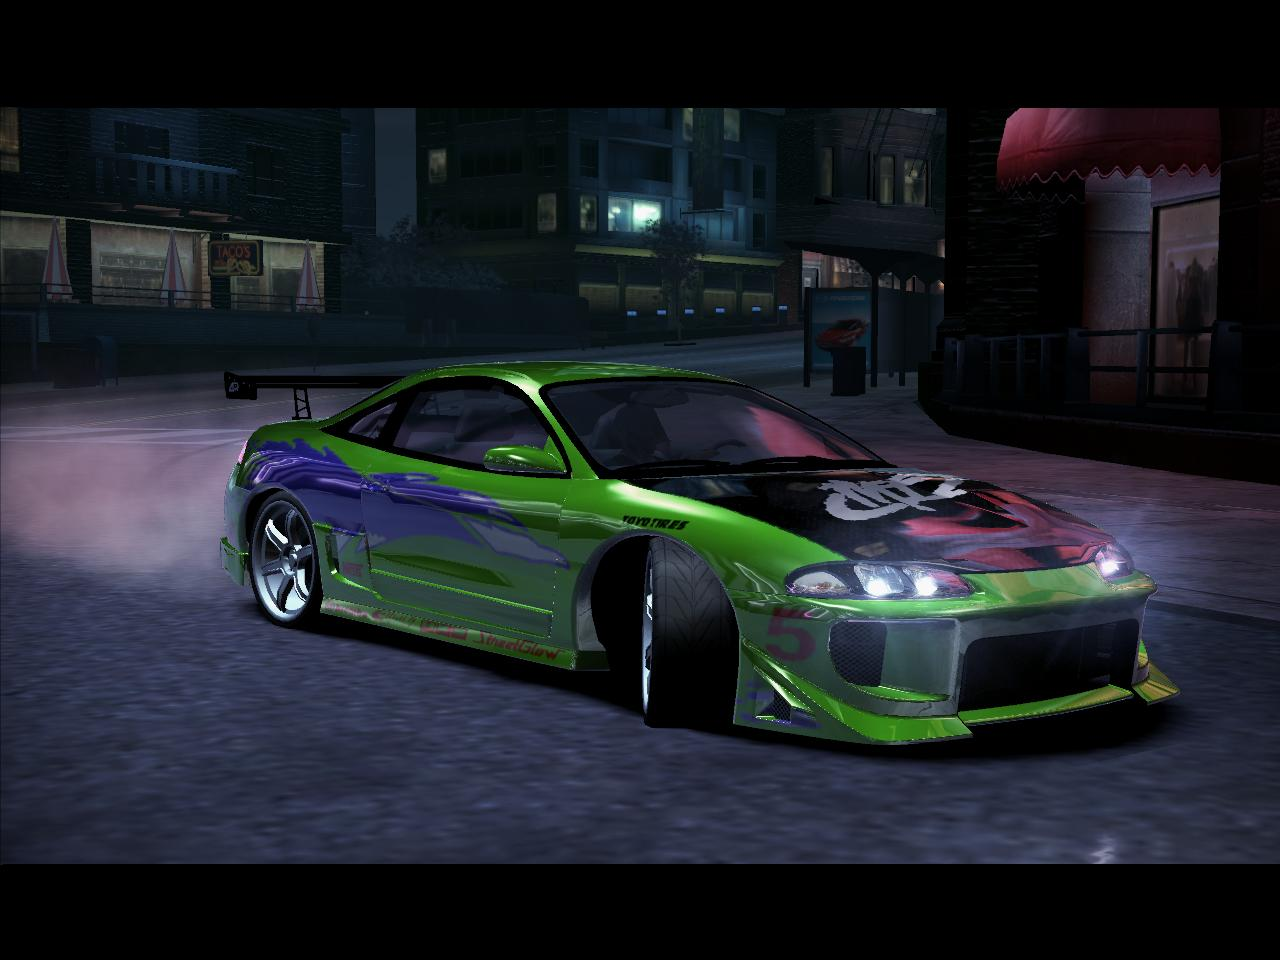 Nfs Carbon Cars Wallpaper Need For Speed Carbon Mitsubishi Mitsubishi Eclipse Gsx